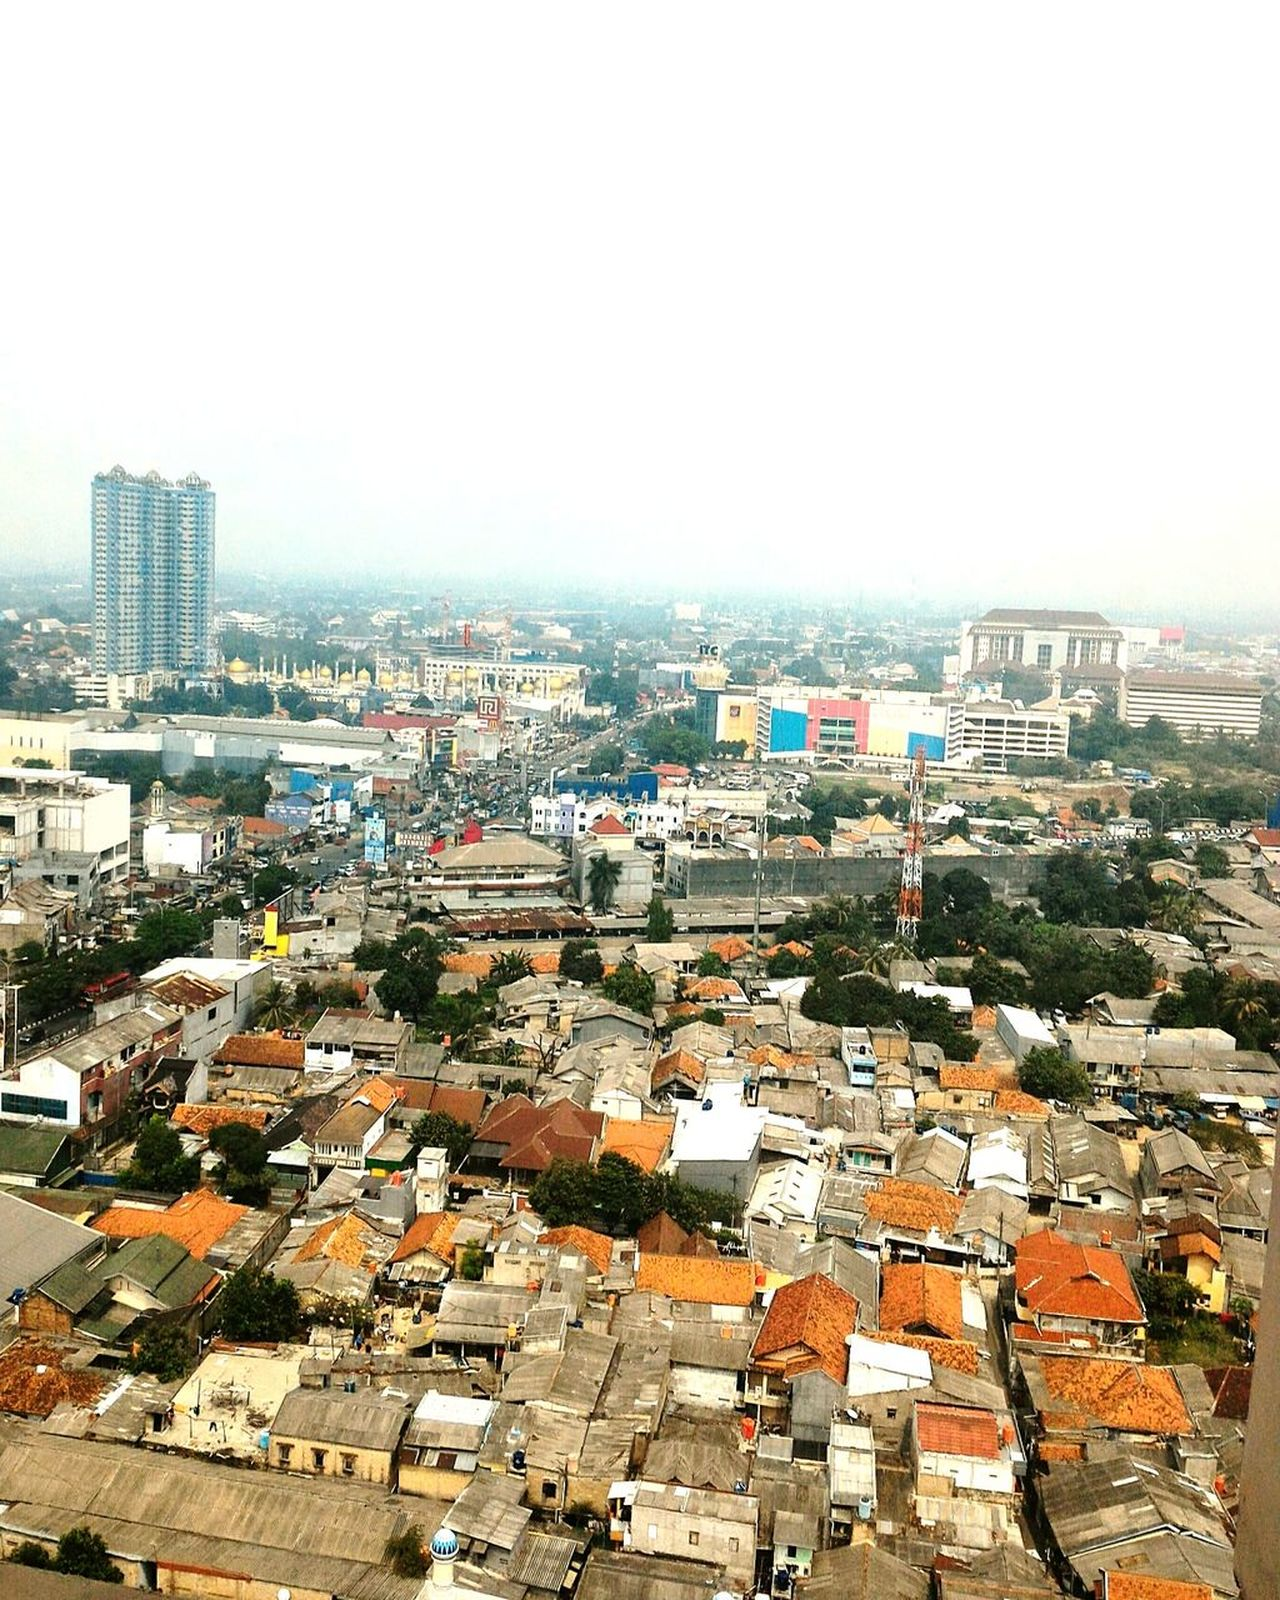 City Cityscape Architecture Business Finance And Industry Skyscraper Downtown District High Angle View Outdoors Urban Skyline Aerial View Building Exterior Day No People Sky Community 3XSPUnity INDONESIA